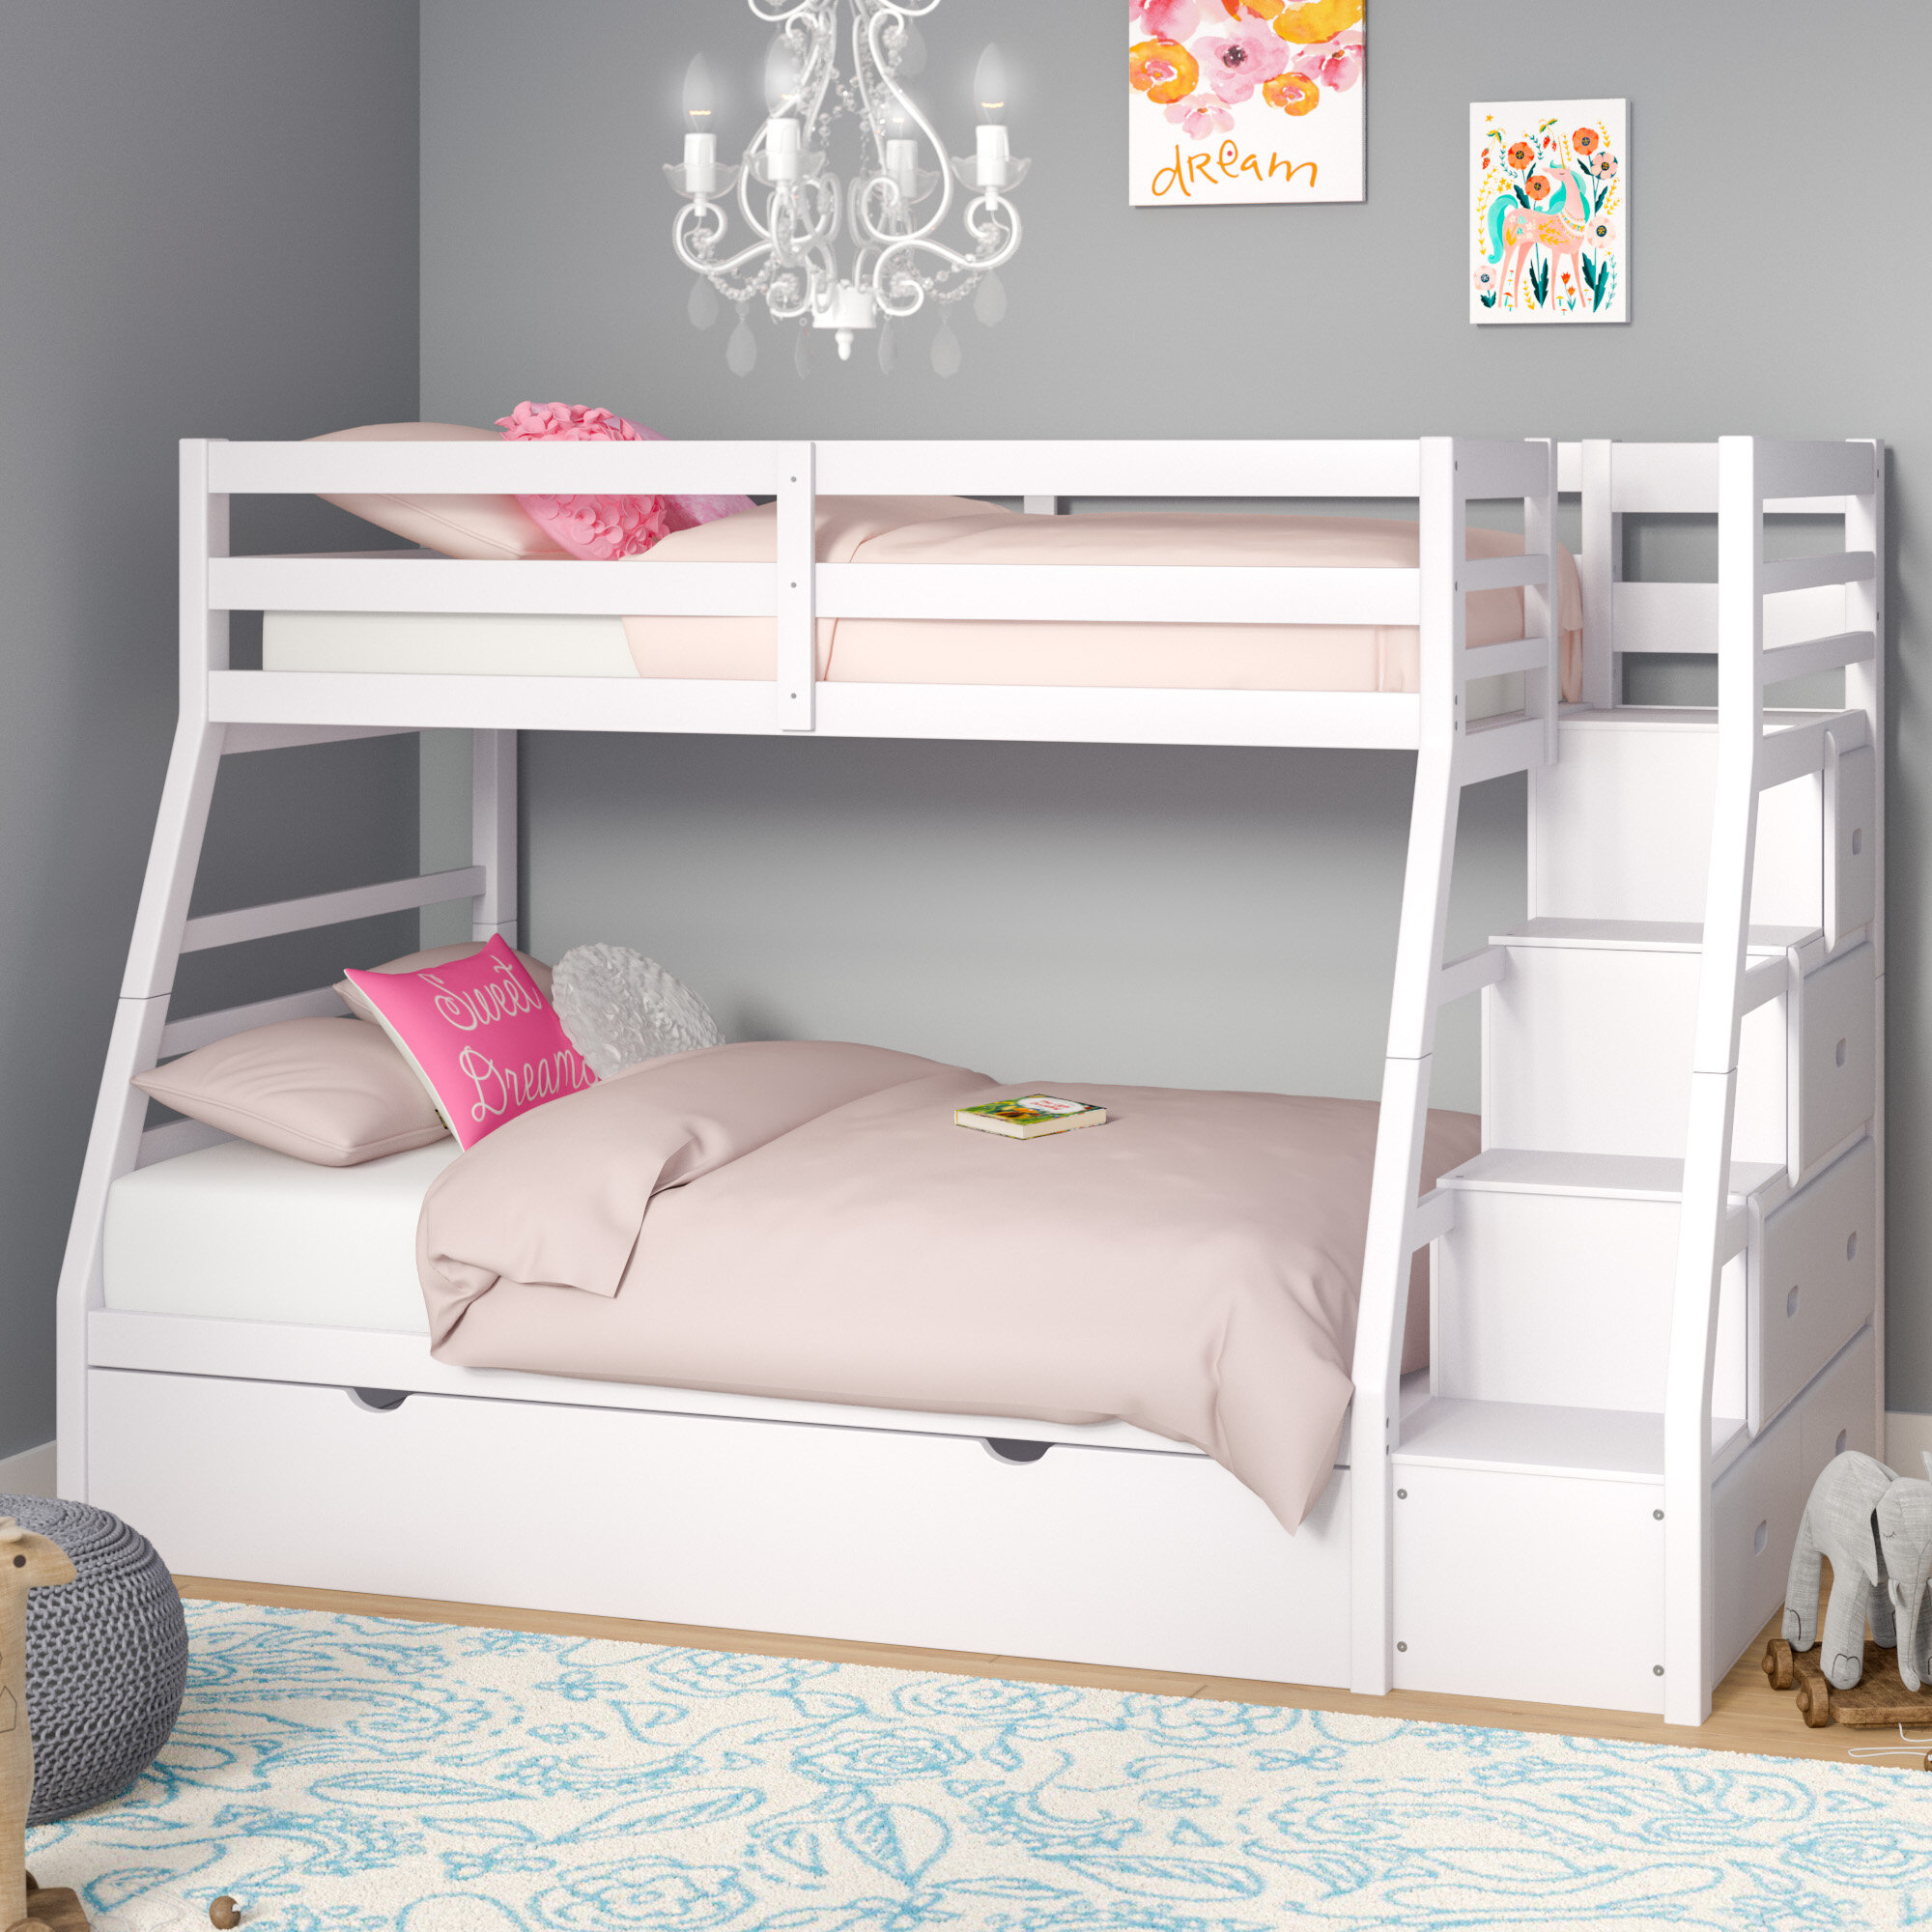 loversiq teenagers desk bedroom tsr teen low girlsteen ceiling girls ceilings withteen sets with adult and wooden pretty shelves beds sims bunk sale slide image loft for bed cool